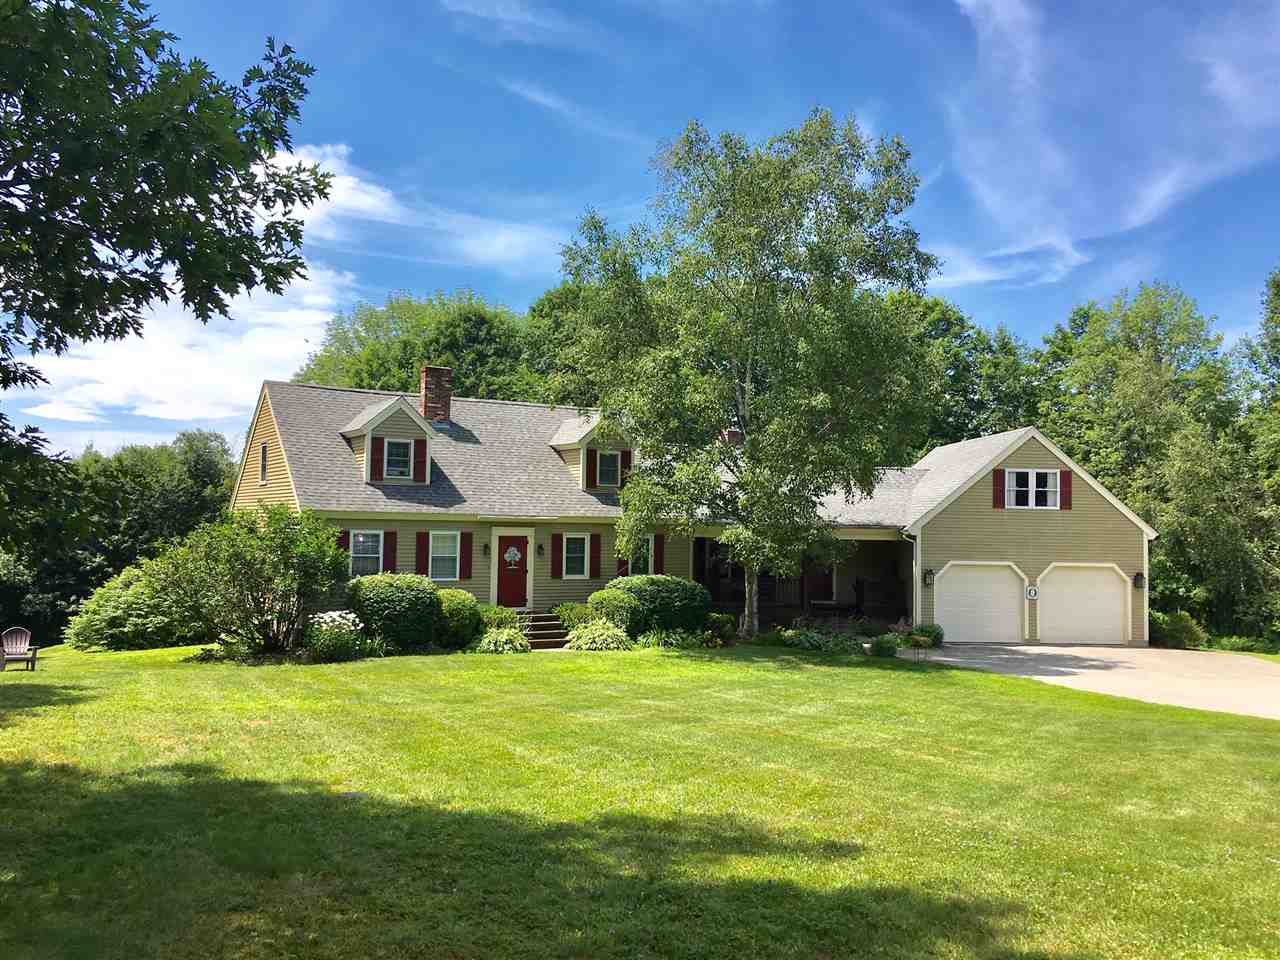 MLS 4766992: 185 Meredith Center Road, Meredith NH